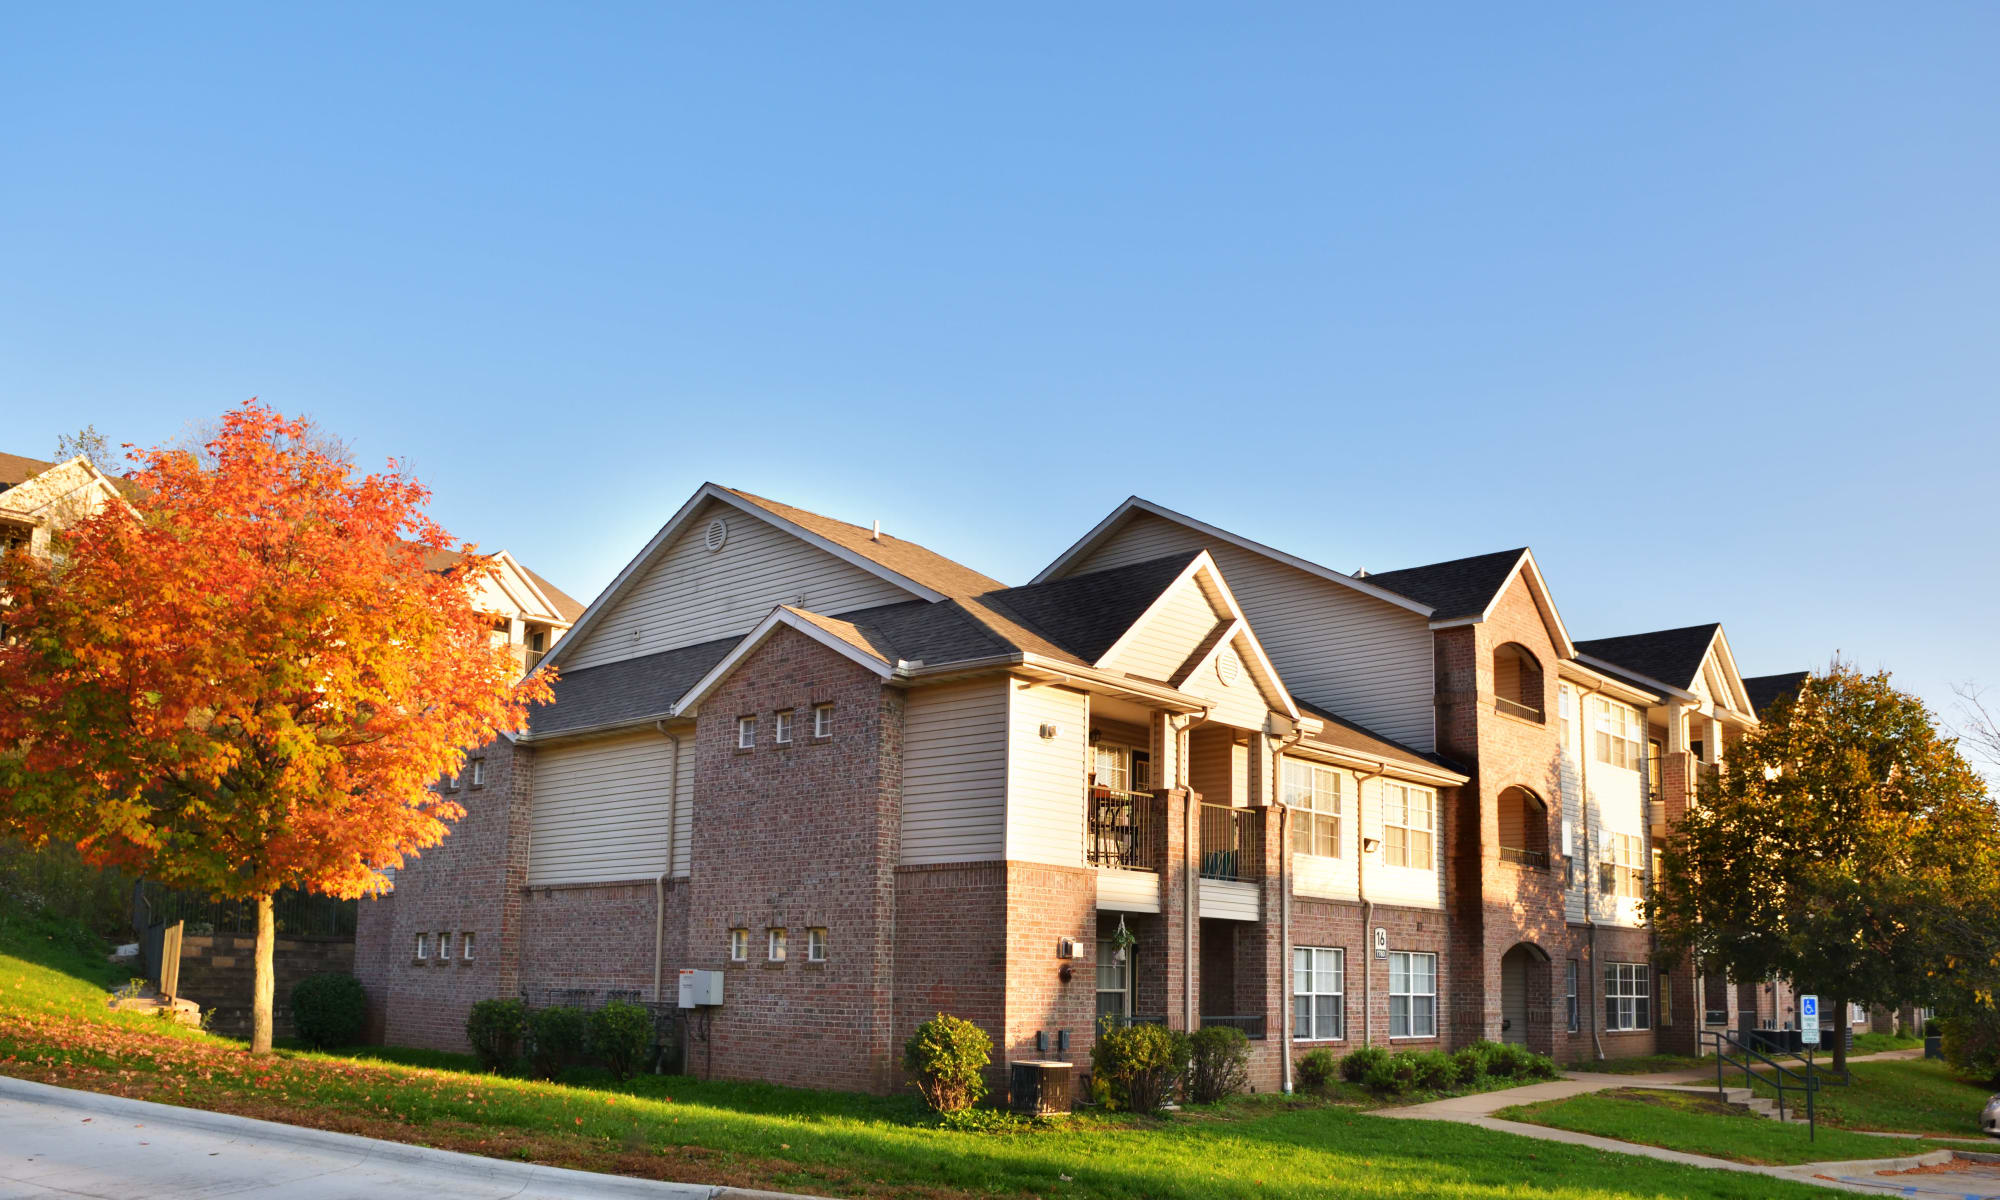 Home at Cascade Falls Apartments in Akron, Ohio